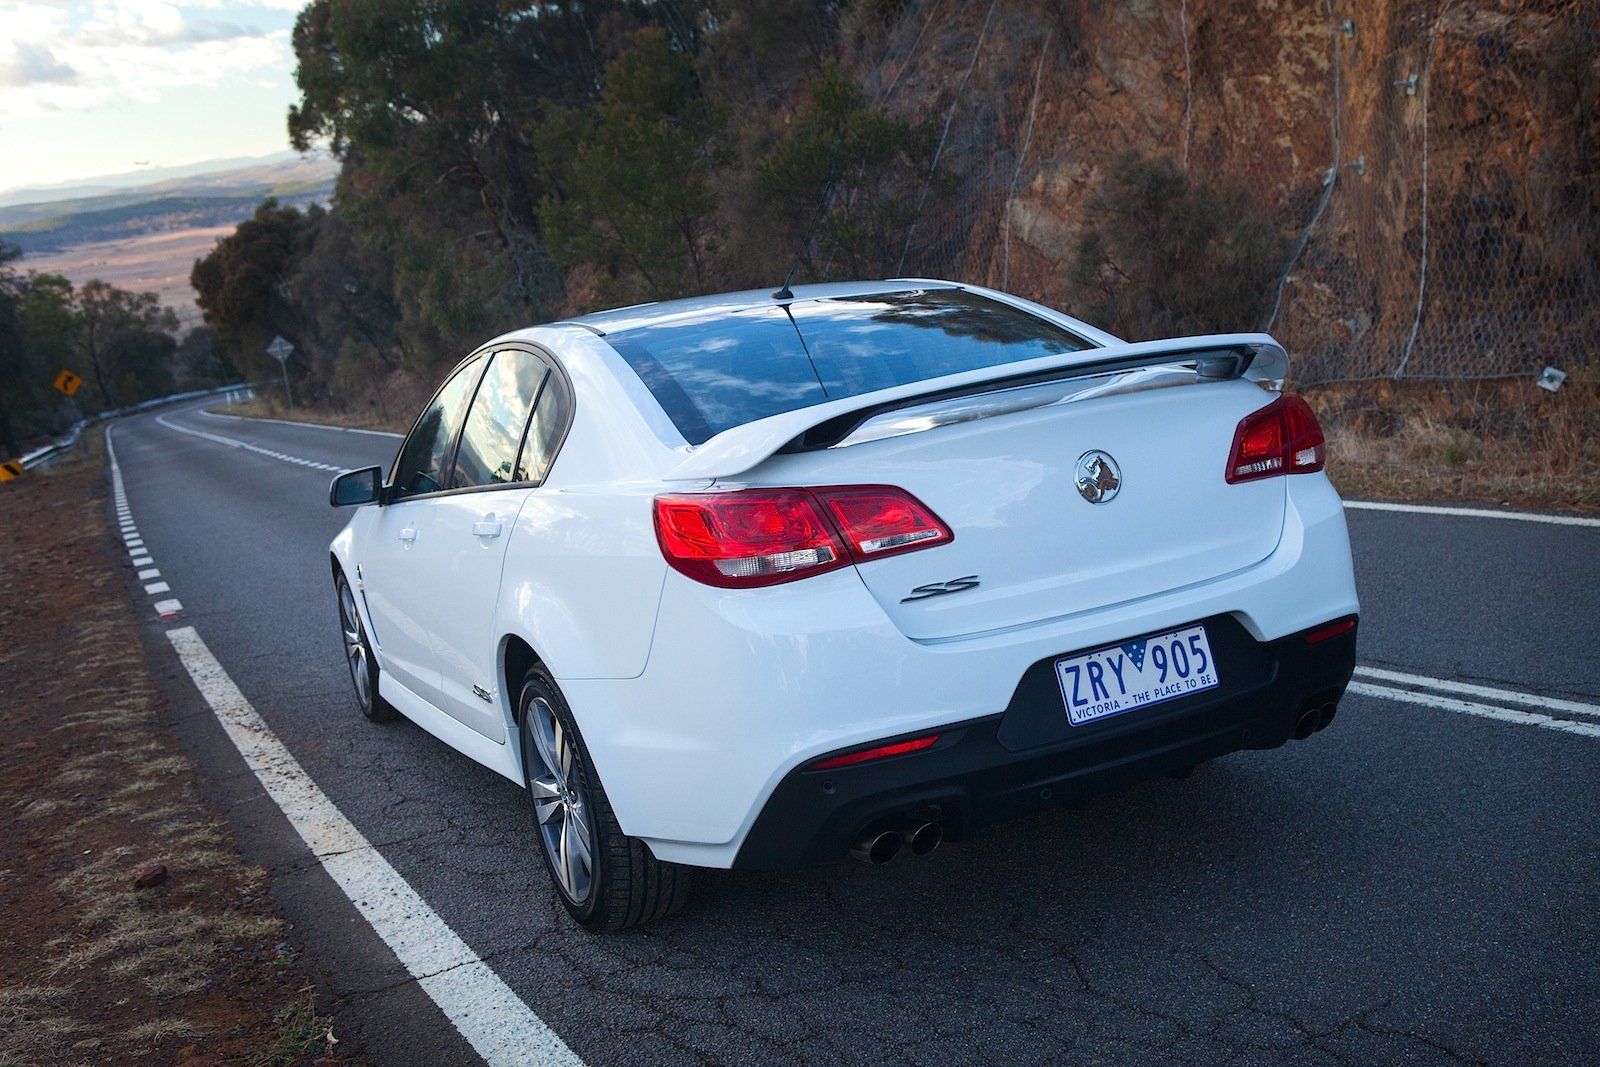 2013 Holden Vf Commodore Ss Review Caradvice